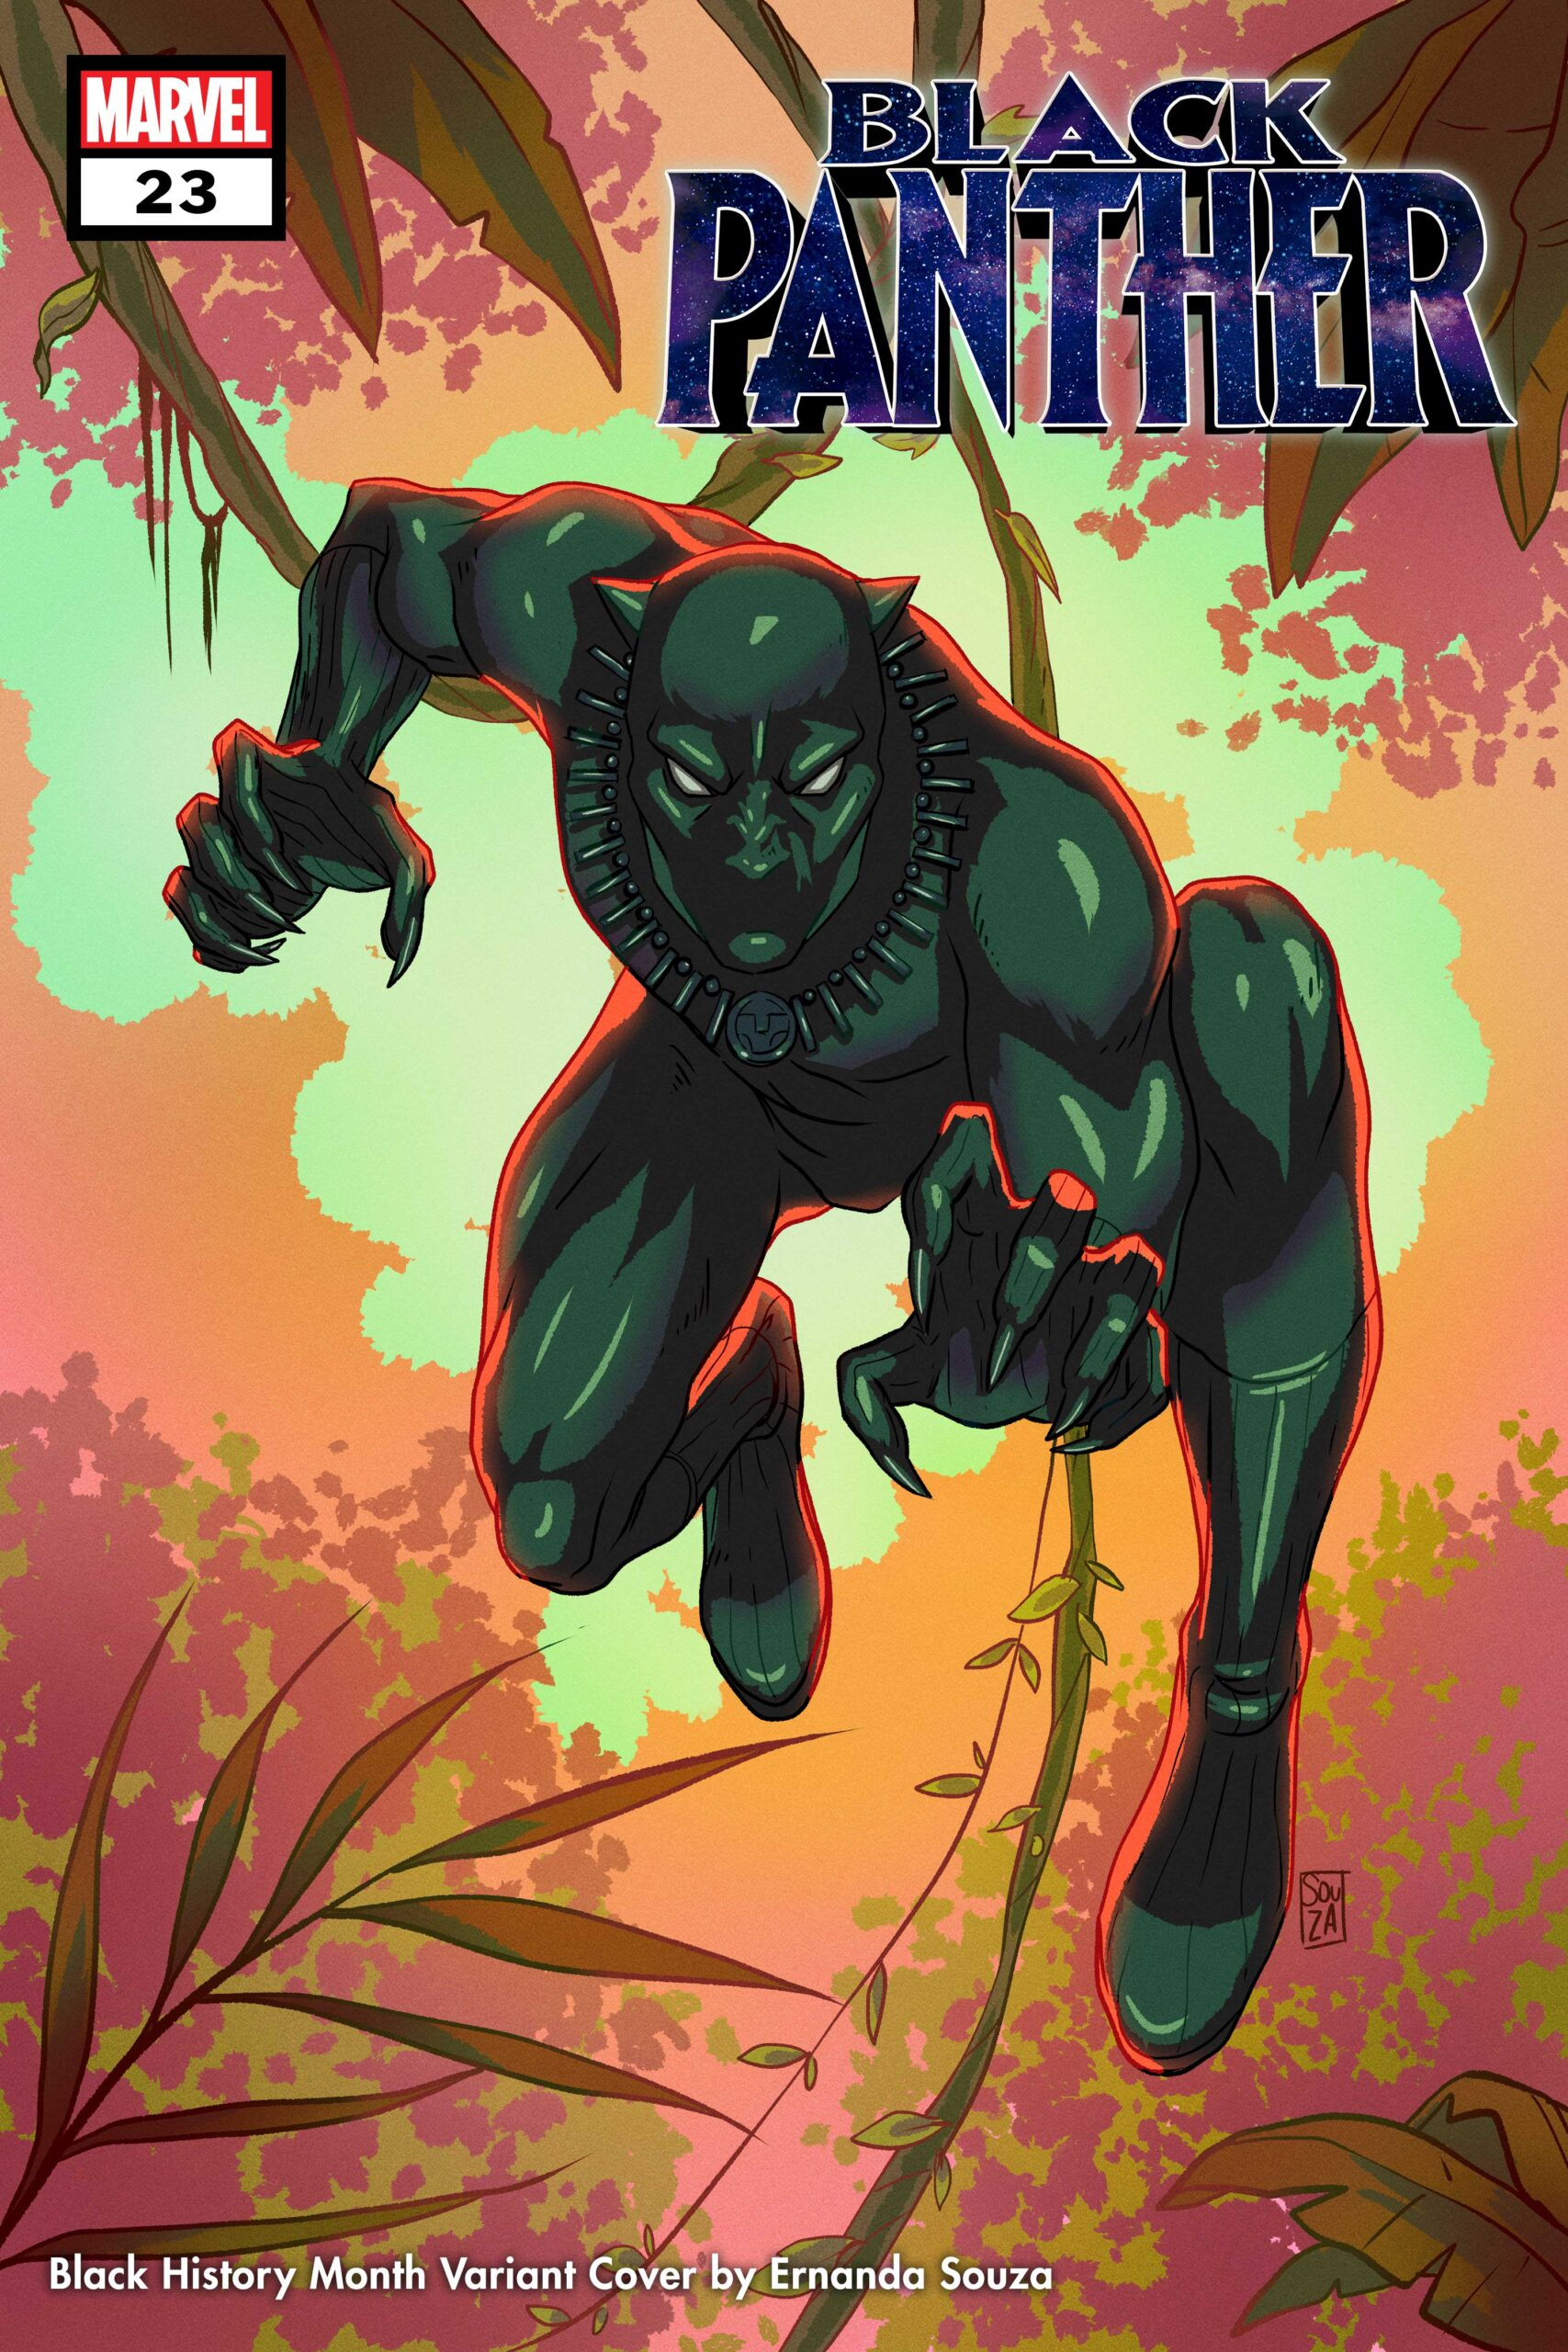 Black Panther 23 Black History Month